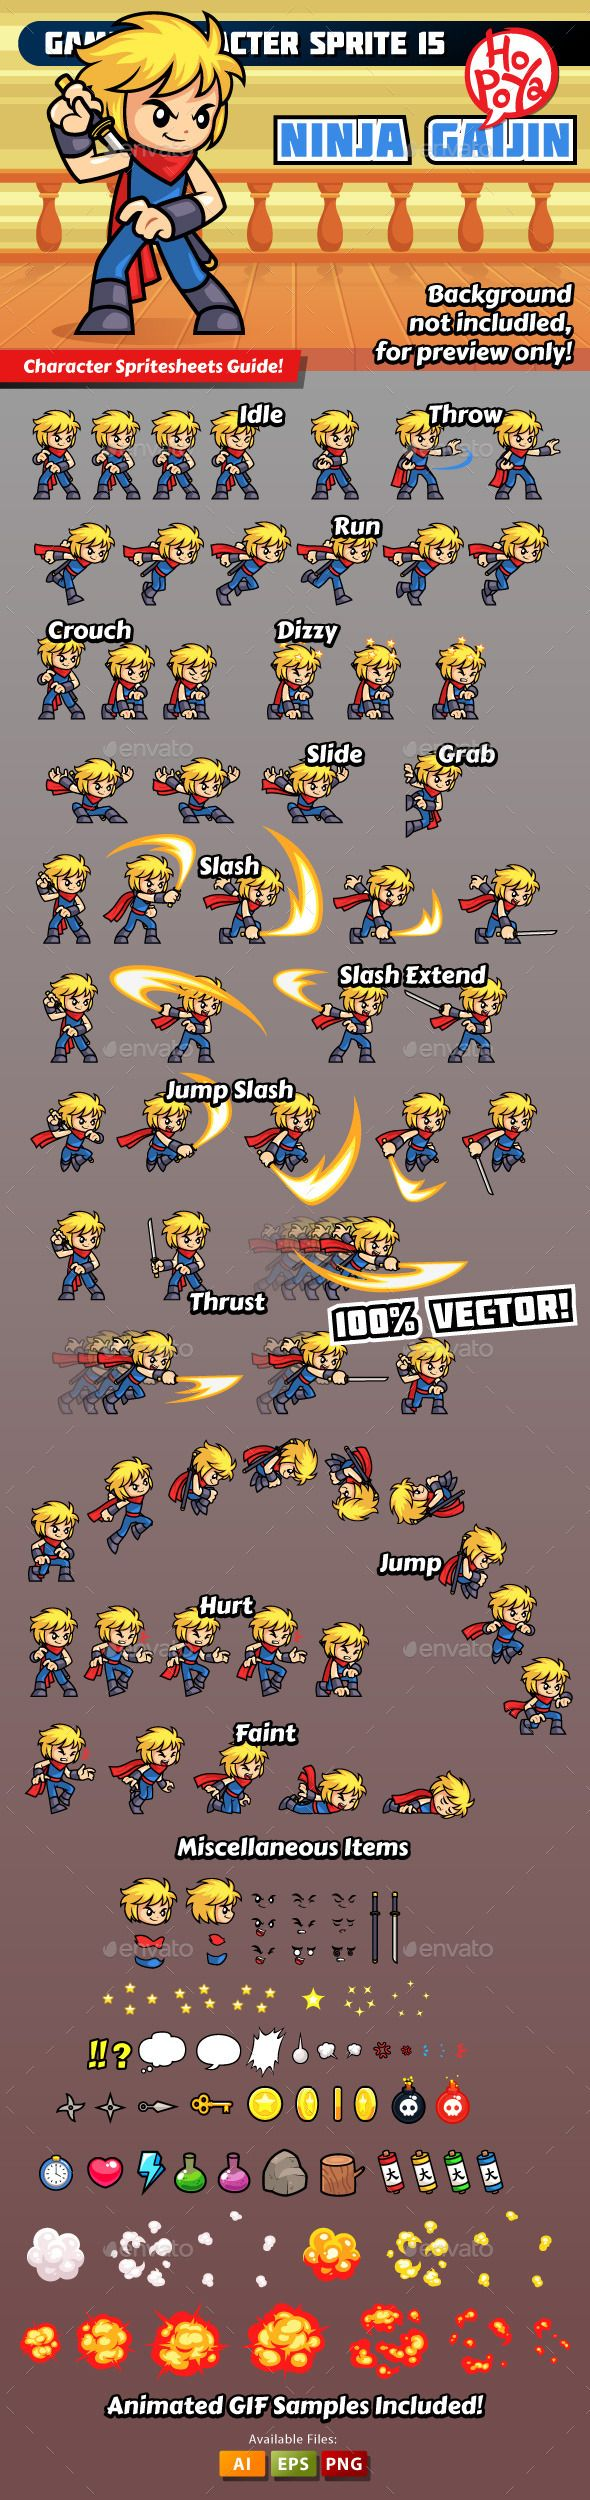 Game Character Sprite 15 By Kemotaku Ninja Gaijin Character Spritesheet For  Side Scrolling Action Adventure Hack U0026 Slash Mobile Game.